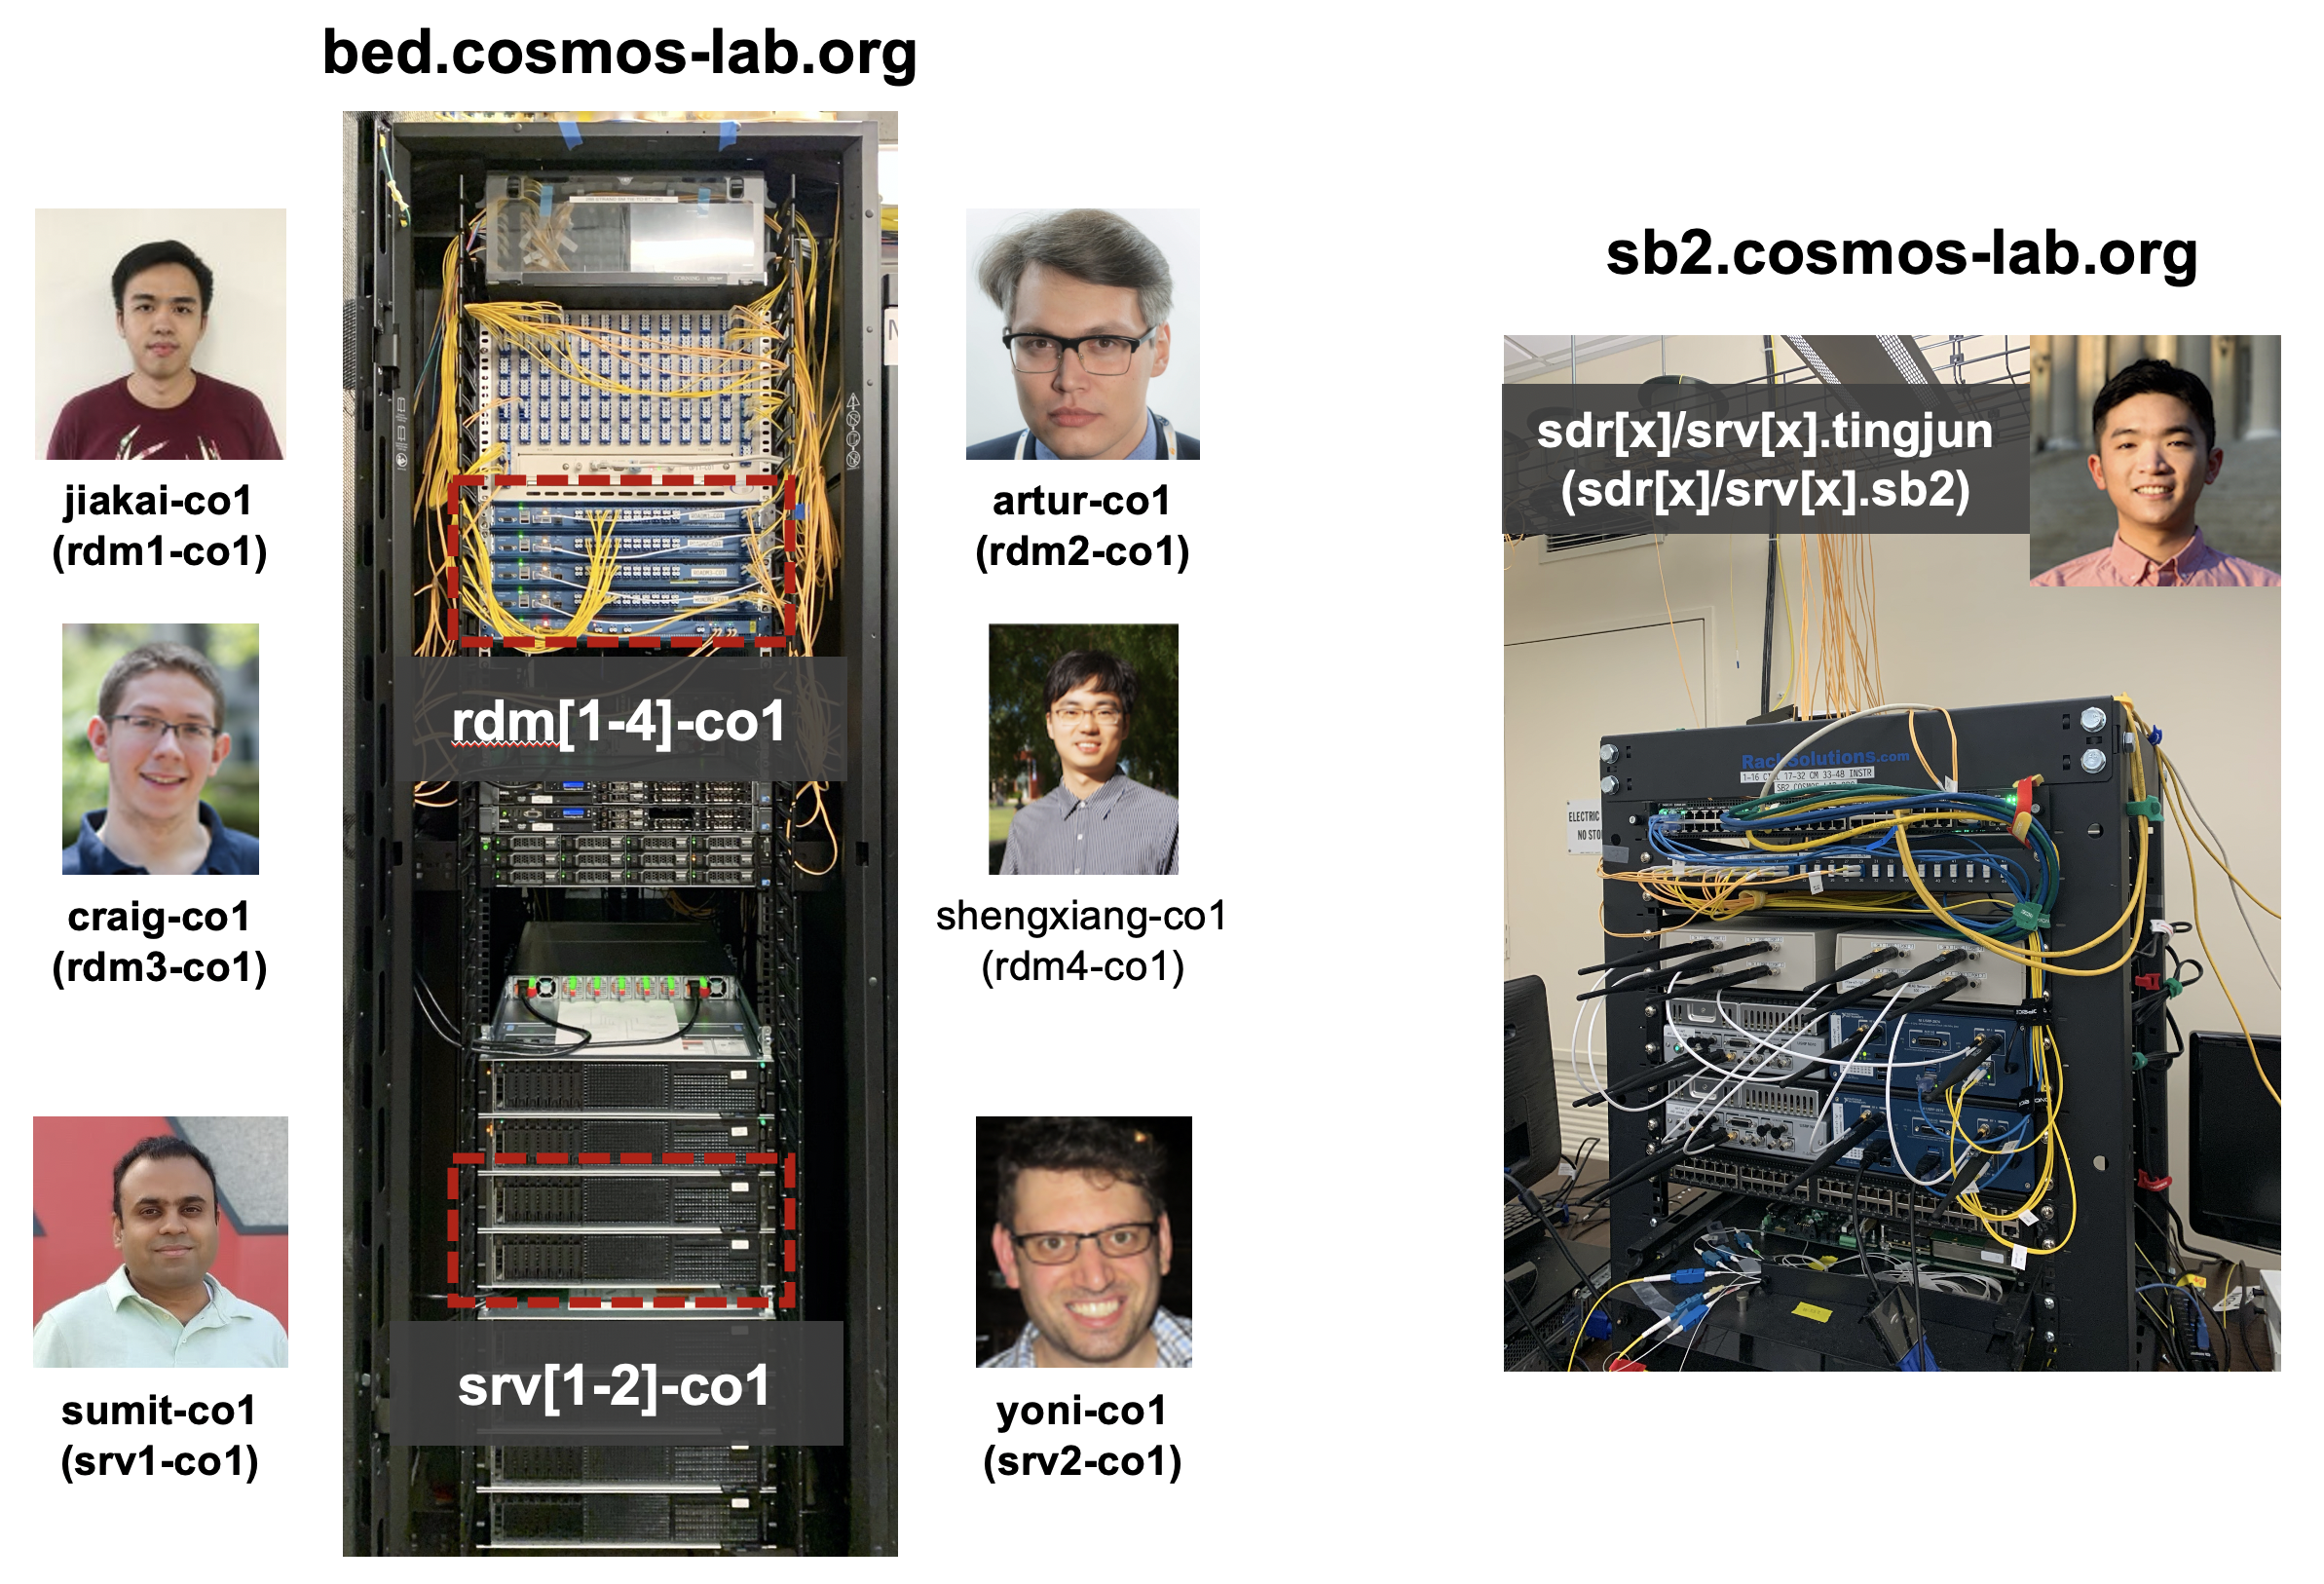 COSMOS Testbed Designated as Generally Available, Nodes Named After Major Graduating Contributors, and NSF Supplemental Funding Available